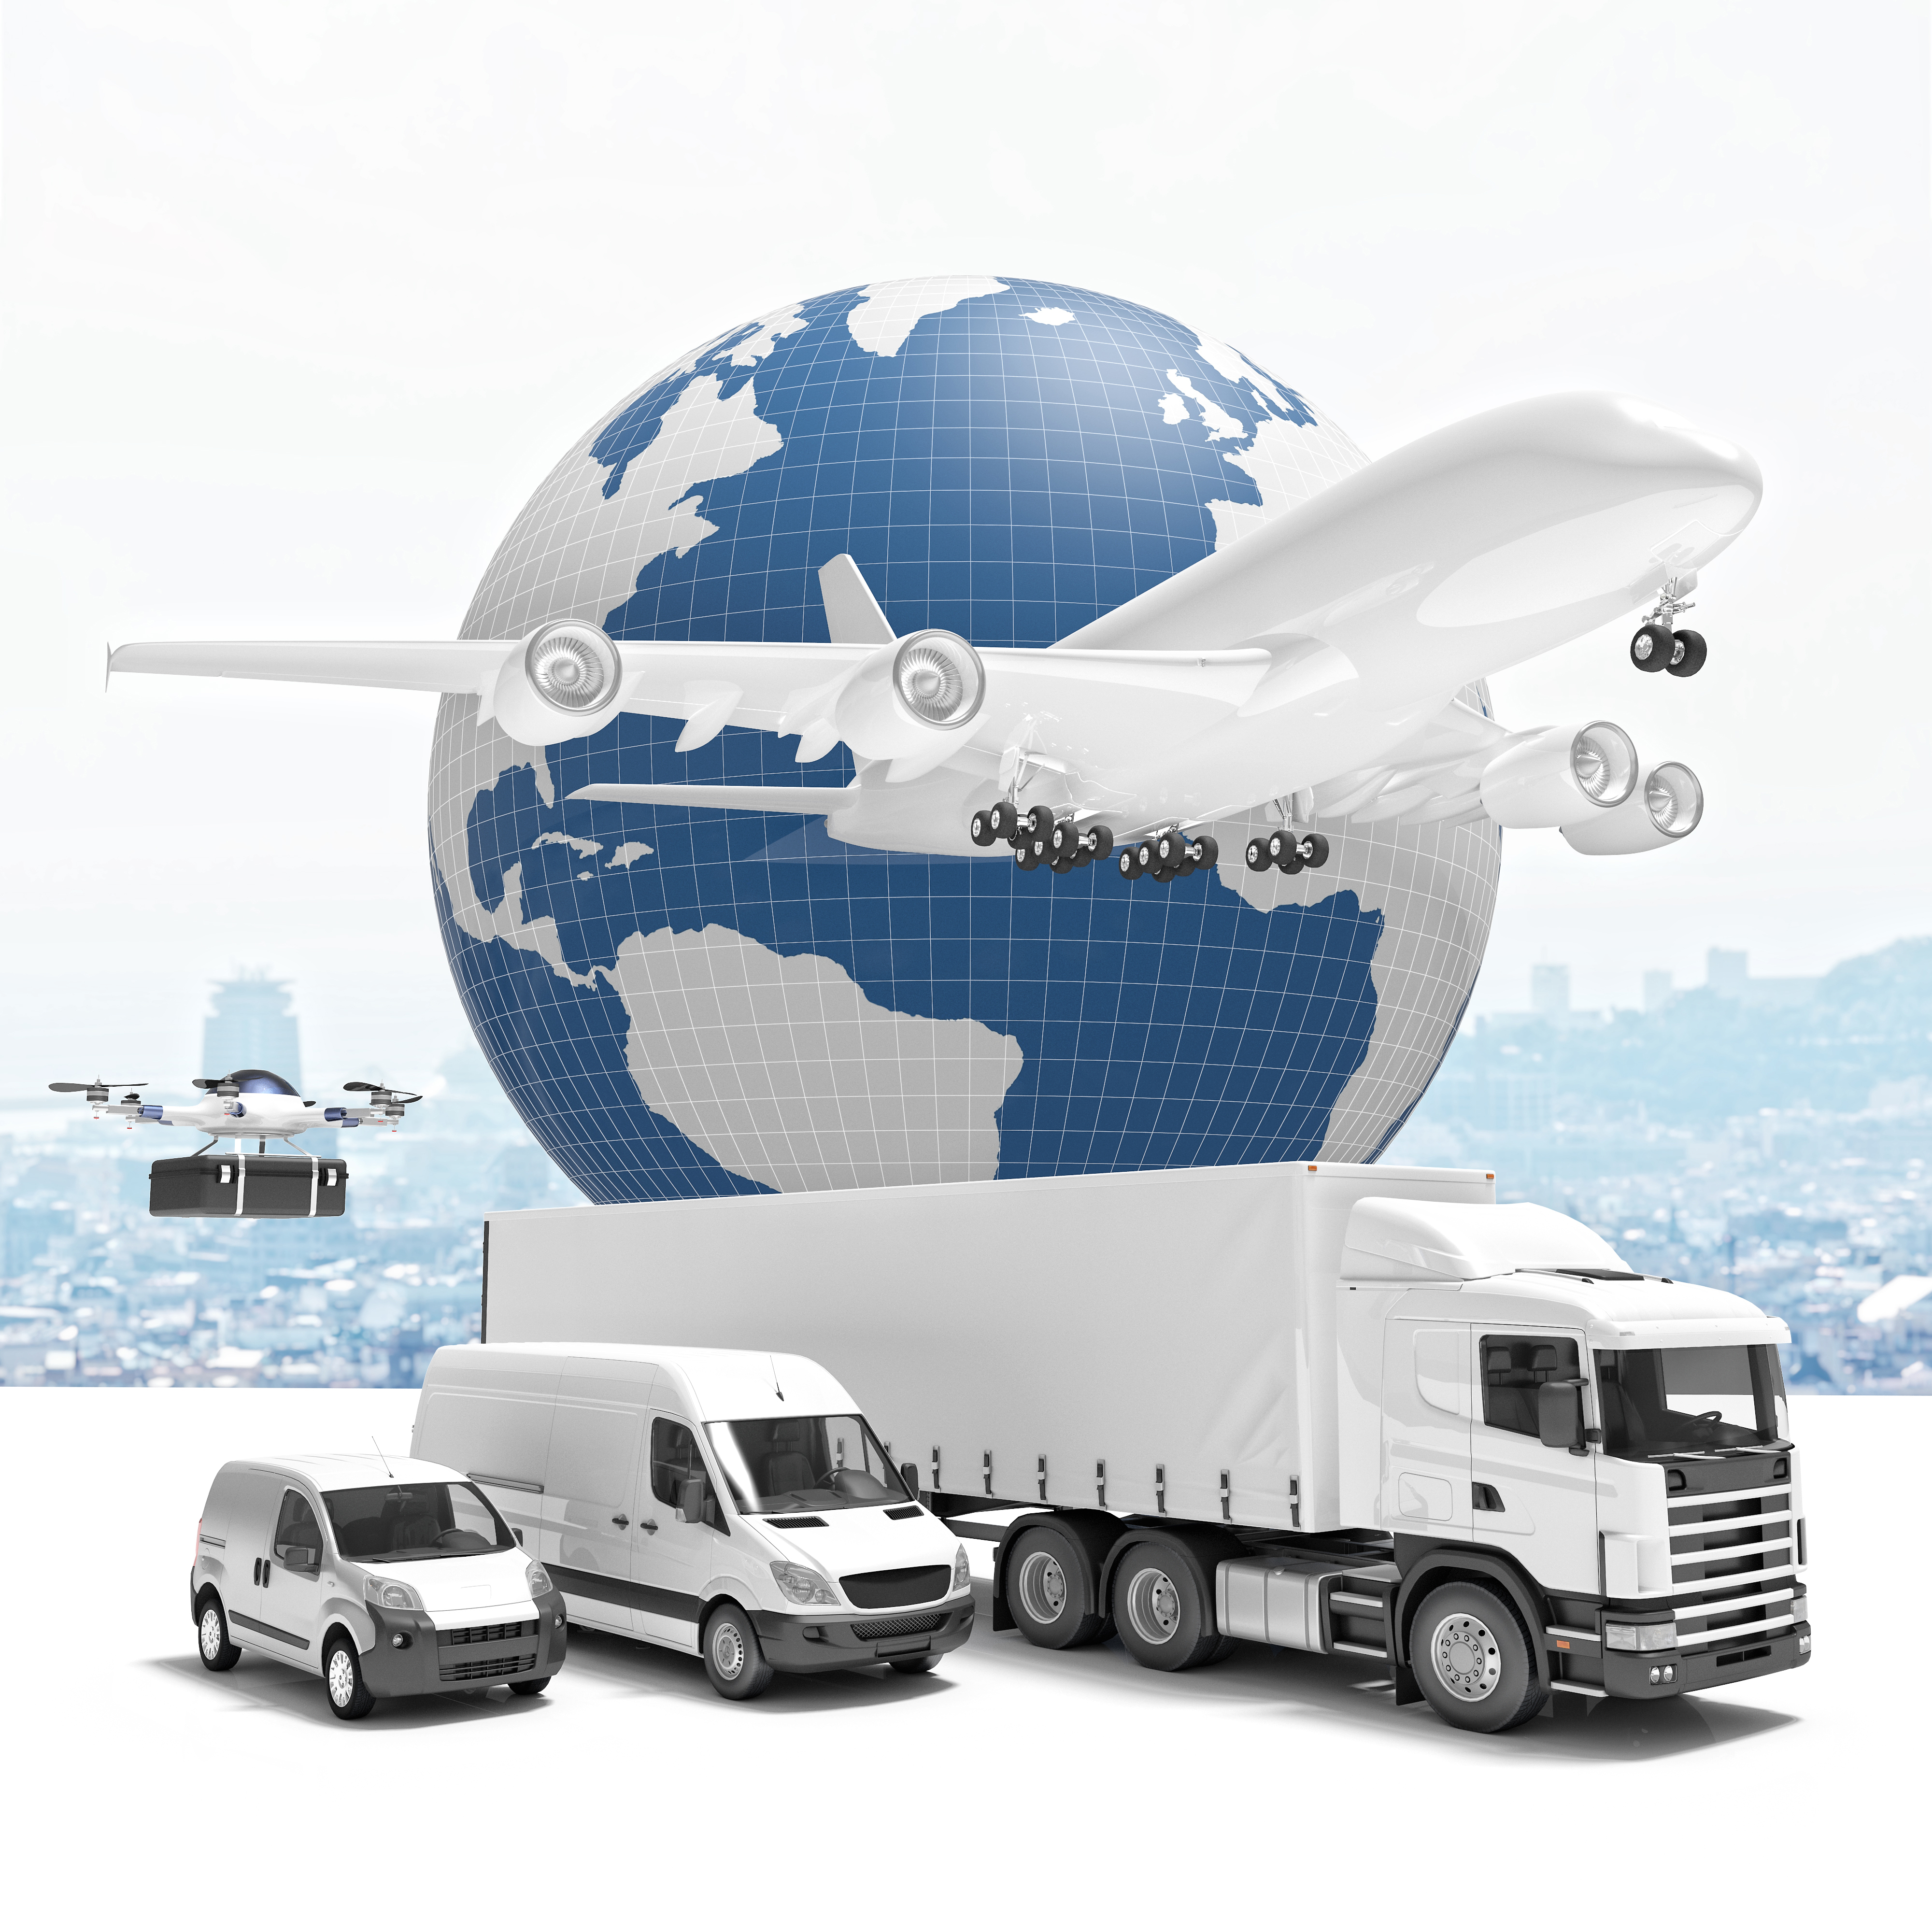 How to select a Logistics Service Provider?